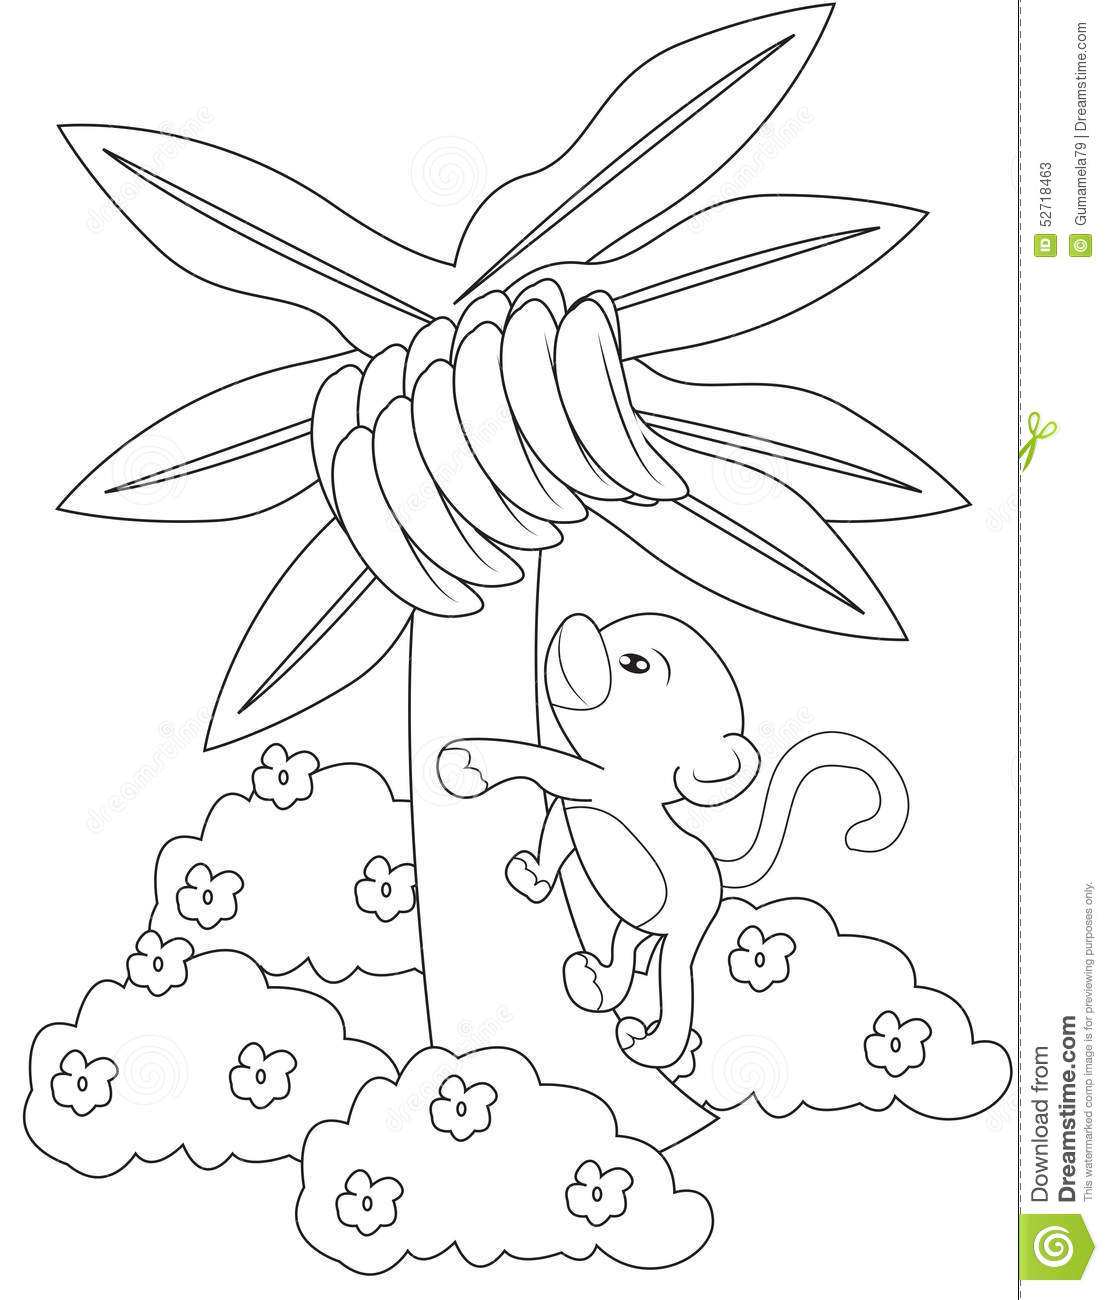 banana tree coloring page sketch template